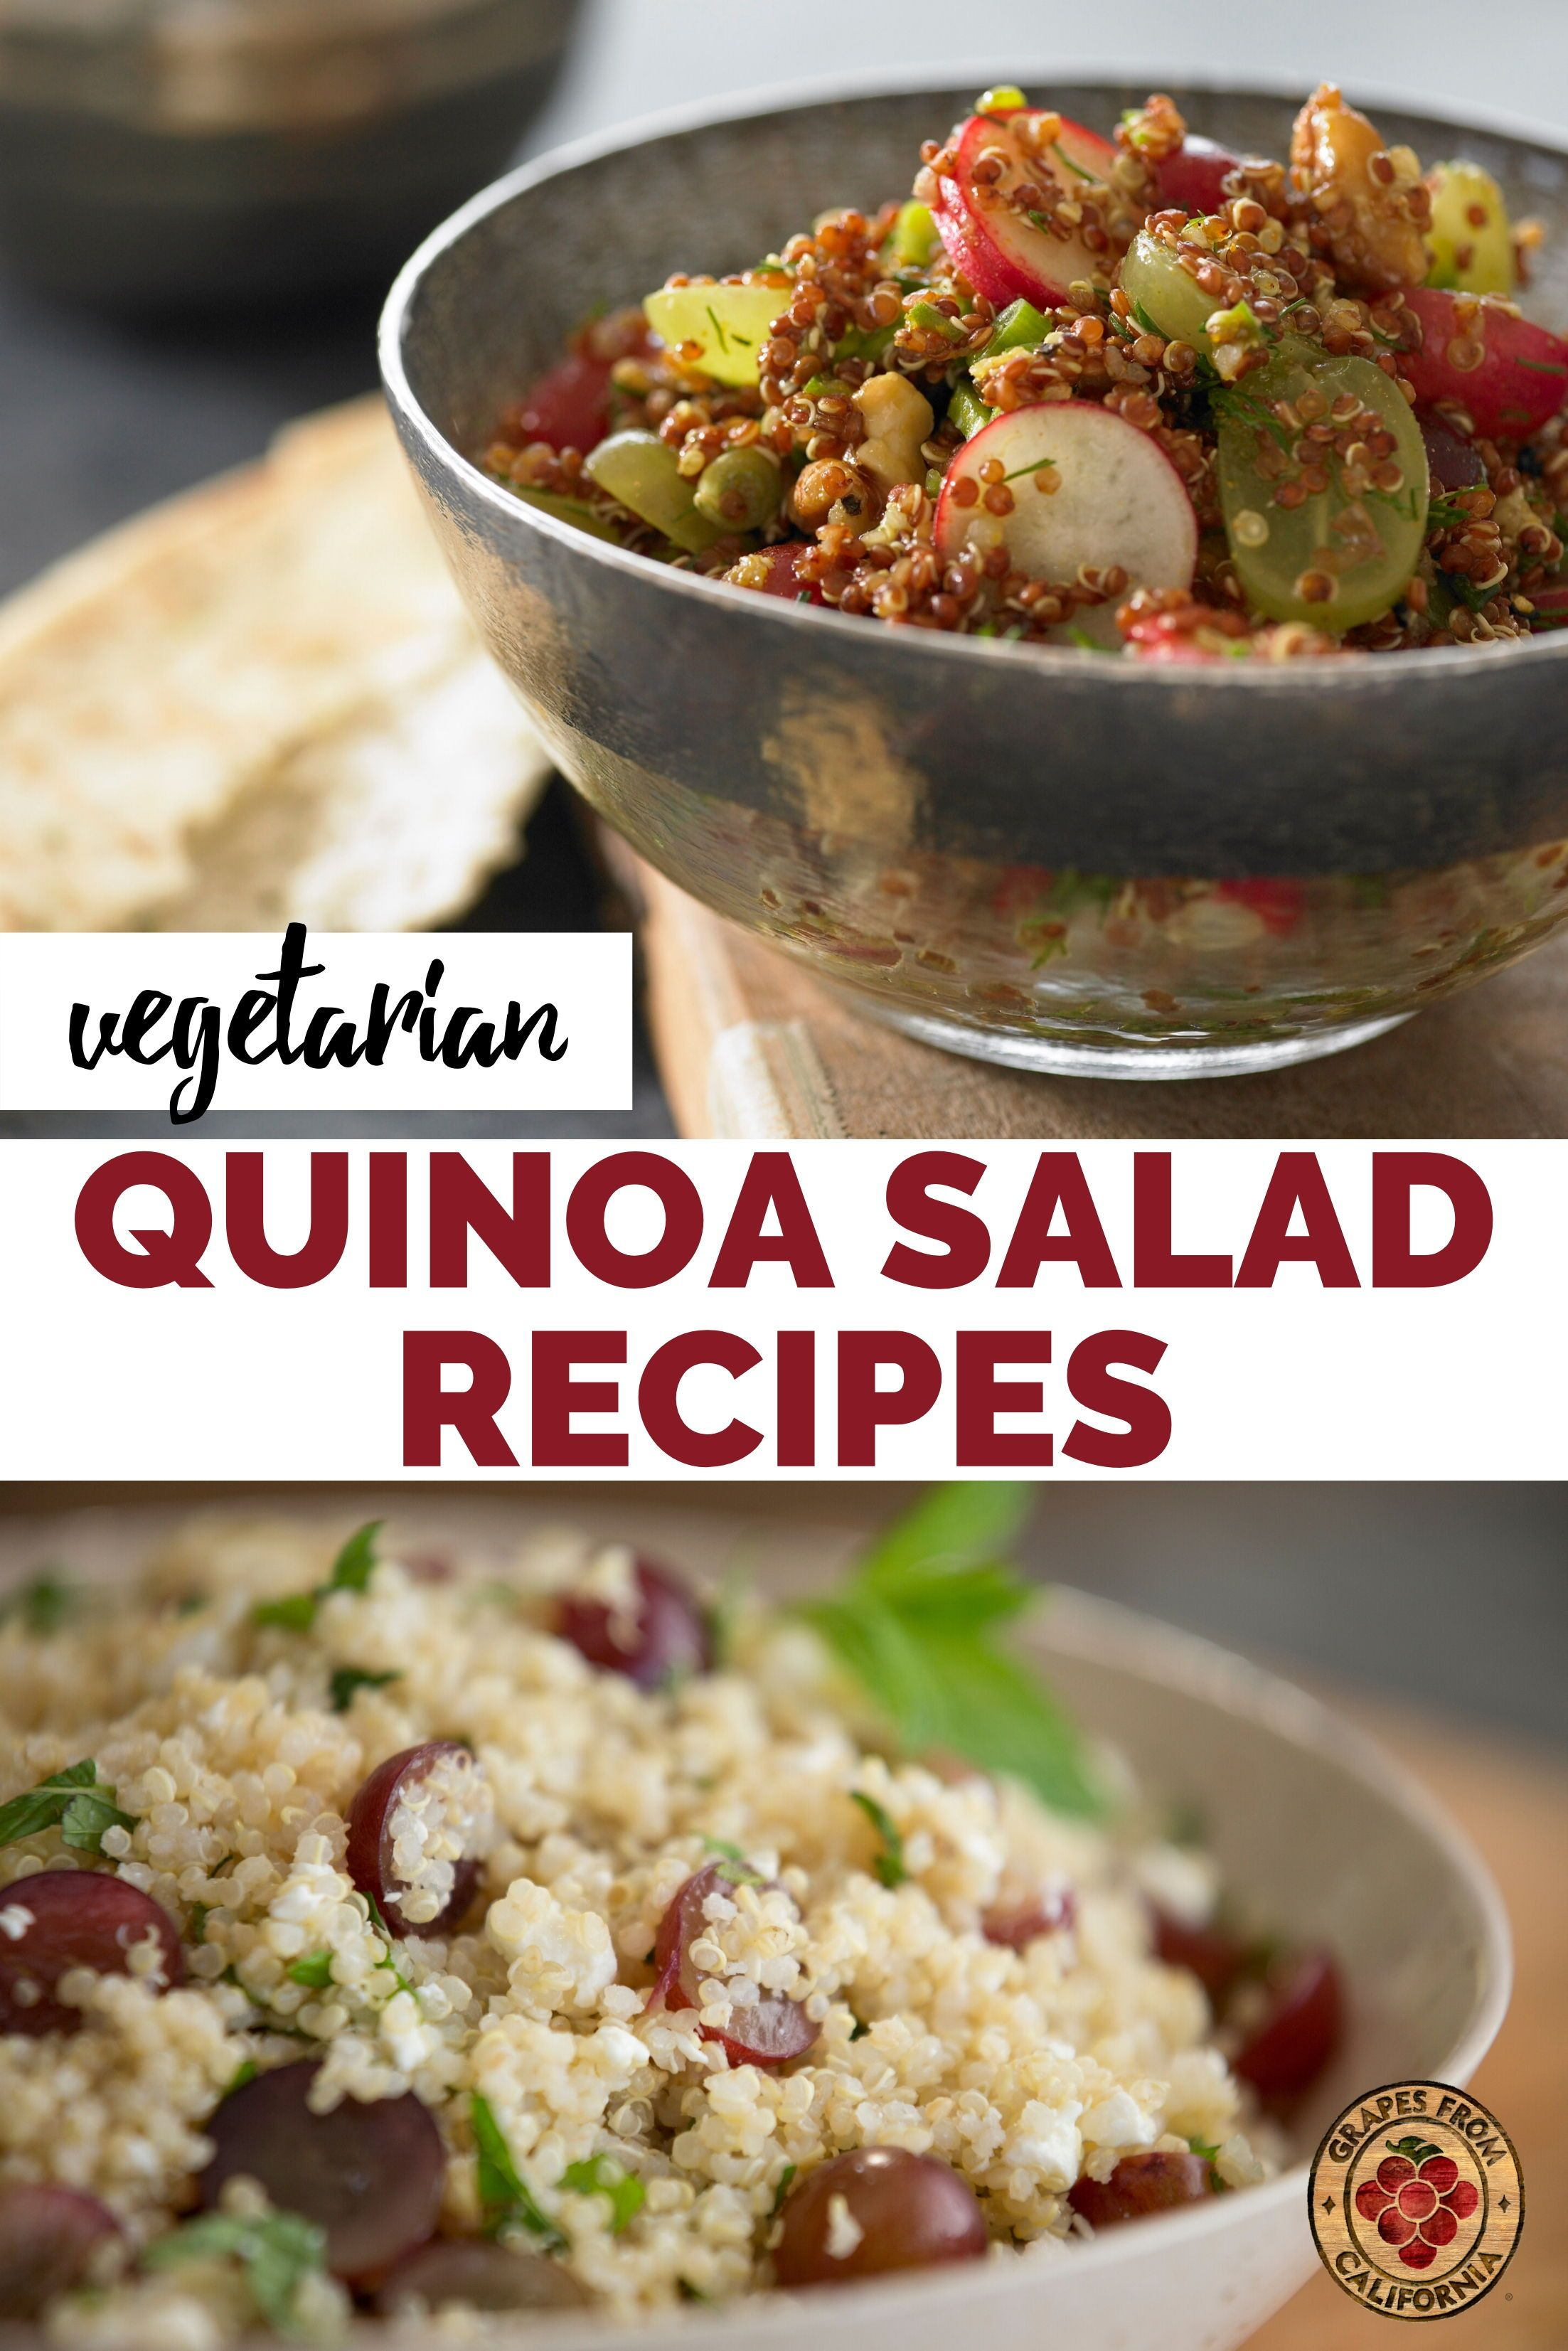 Vegetarian Quinoa Salad Recipes In 2020 Quinoa Salad Recipes Vegetarian Quinoa Salad Salad Recipes